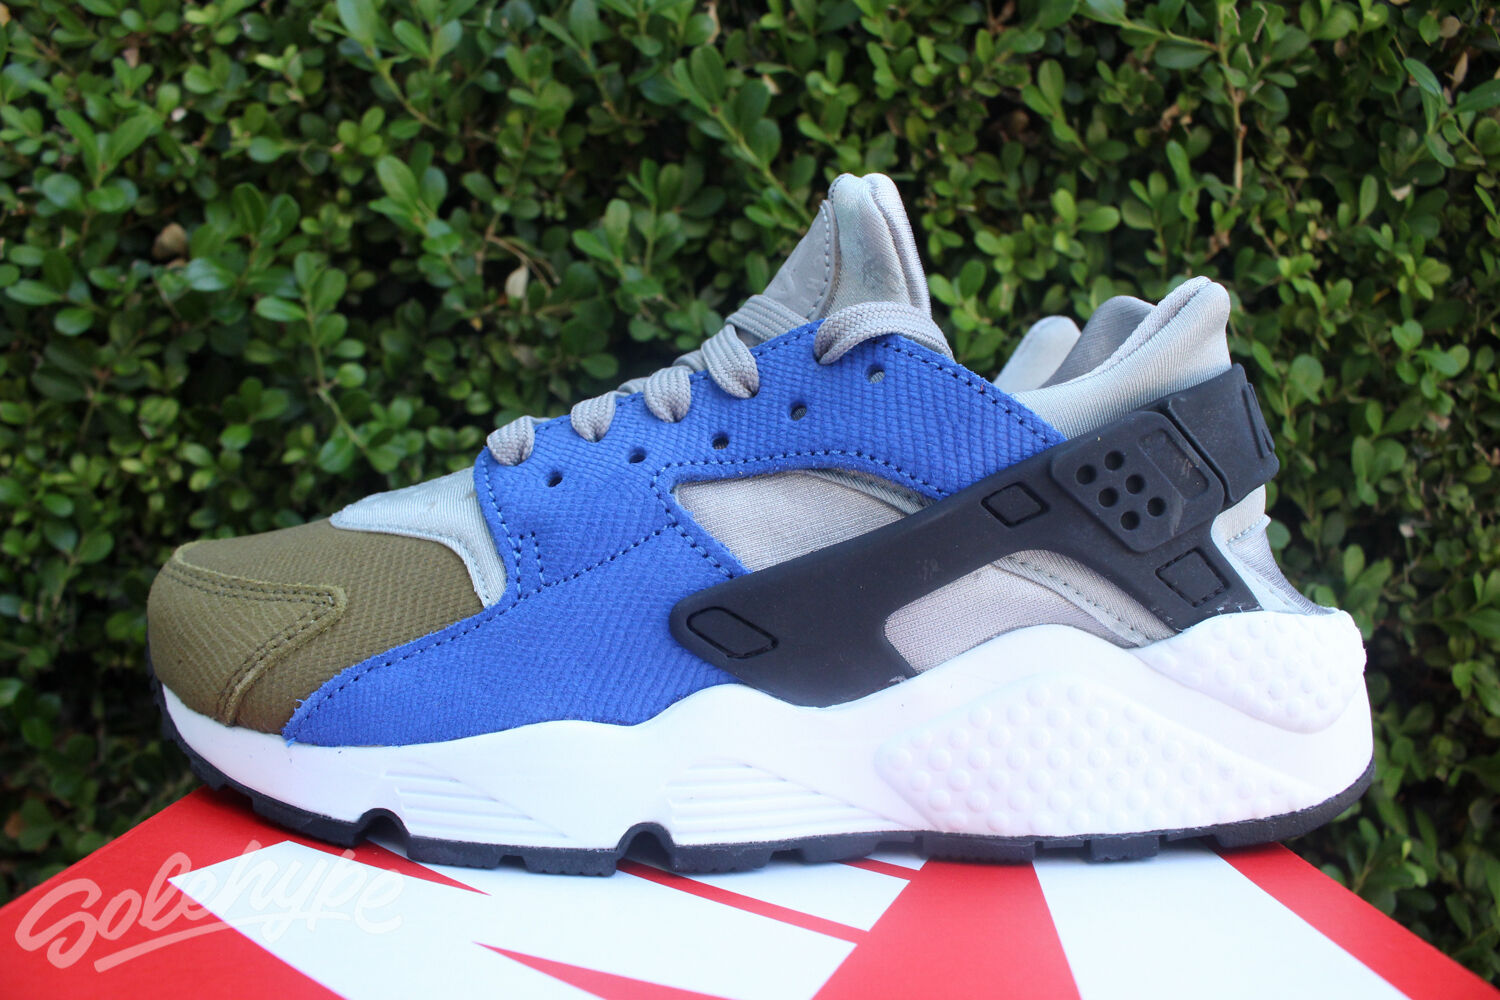 NIKE WOMENS AIR HUARACHE PREMIUM SZ 6 MATTE SILVER BLACK ROYAL blueE 683818 007